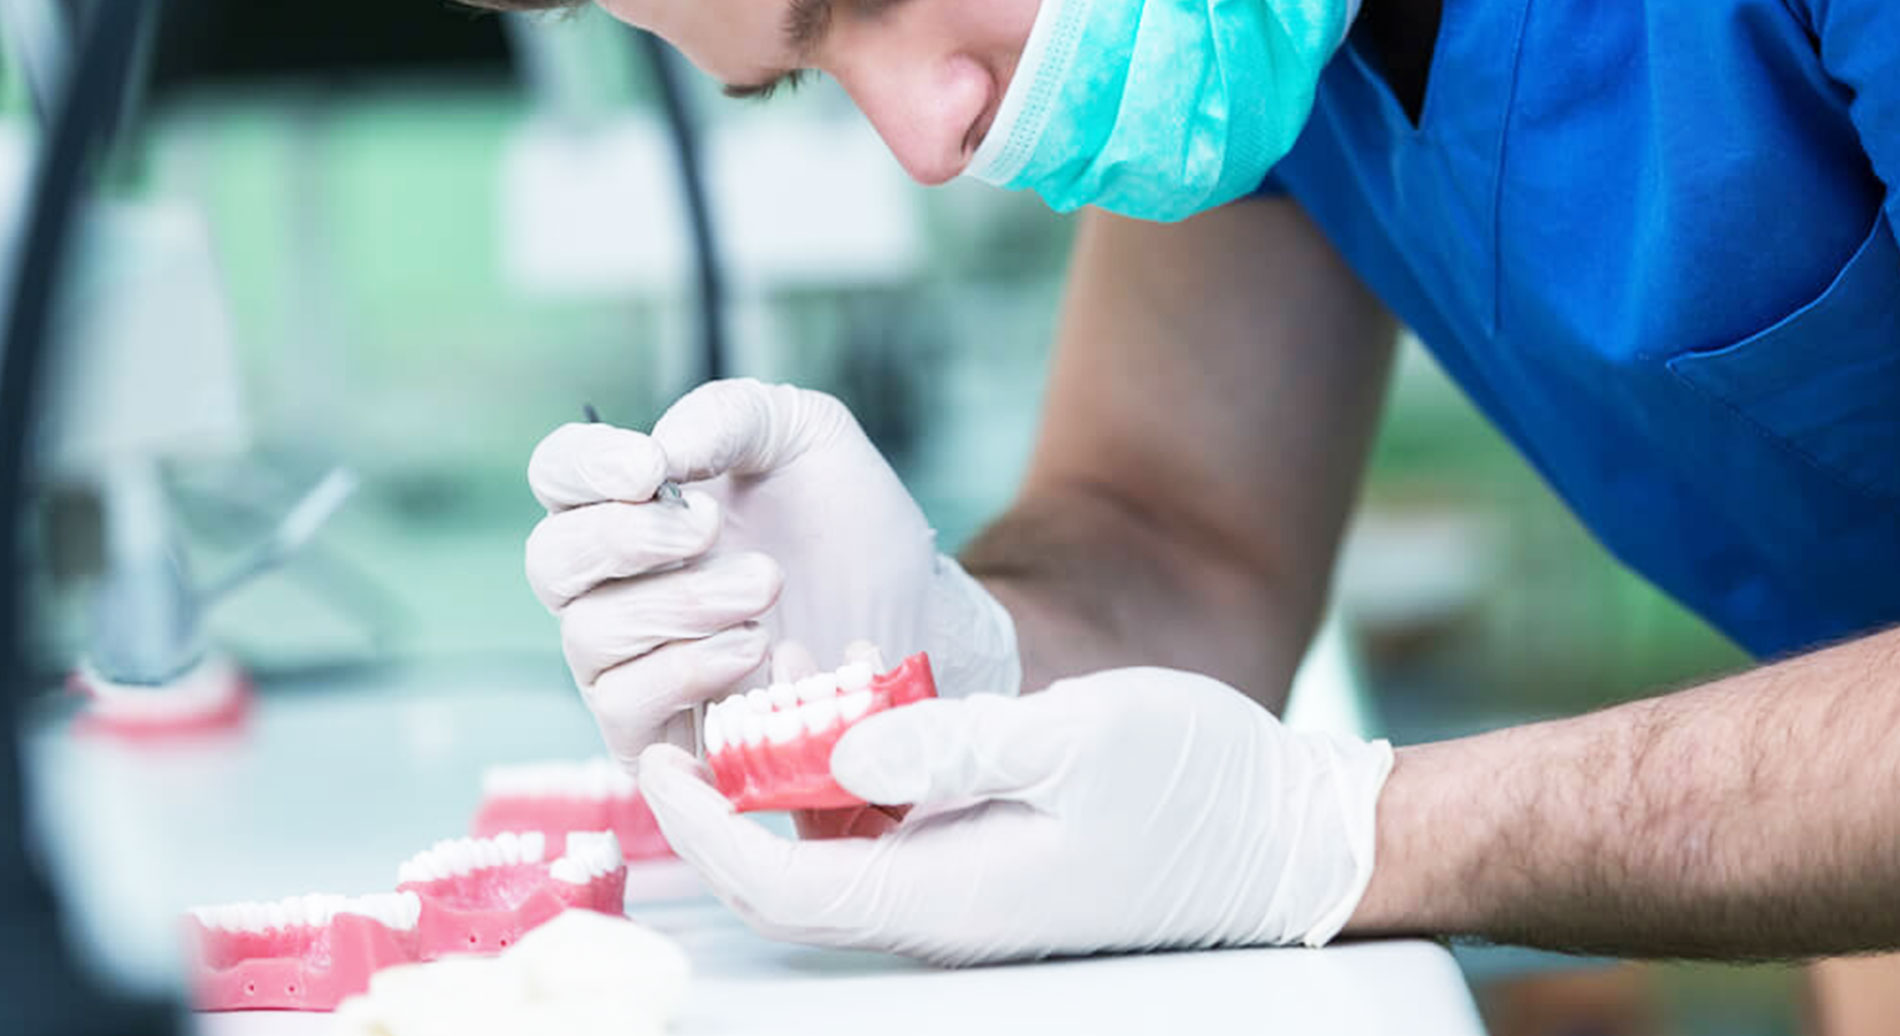 riparazioni dentali immediate per protesi e dentiere